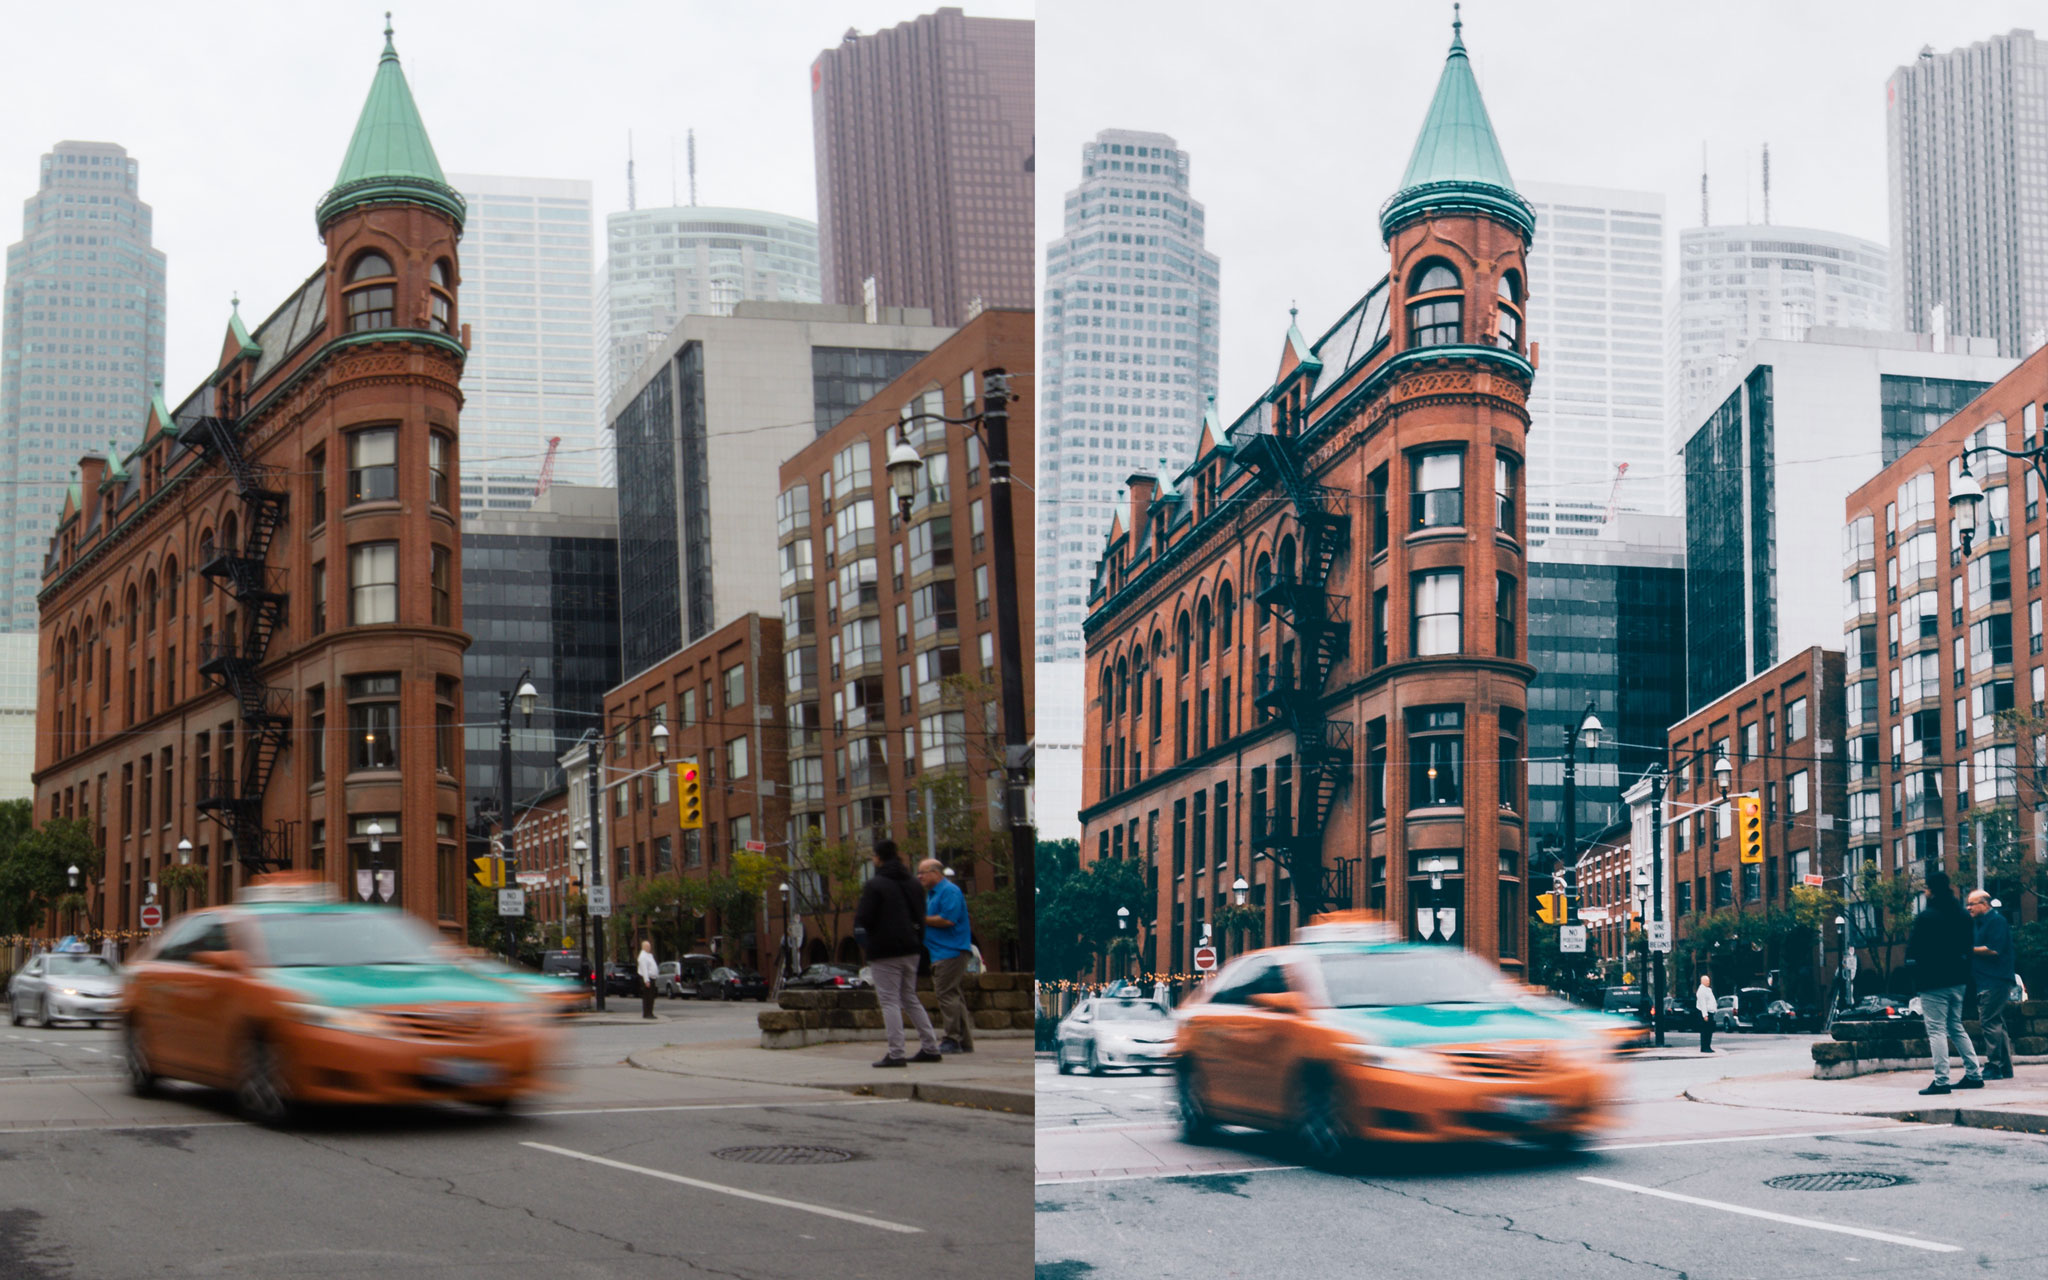 Master Motion Blur in Street Photography